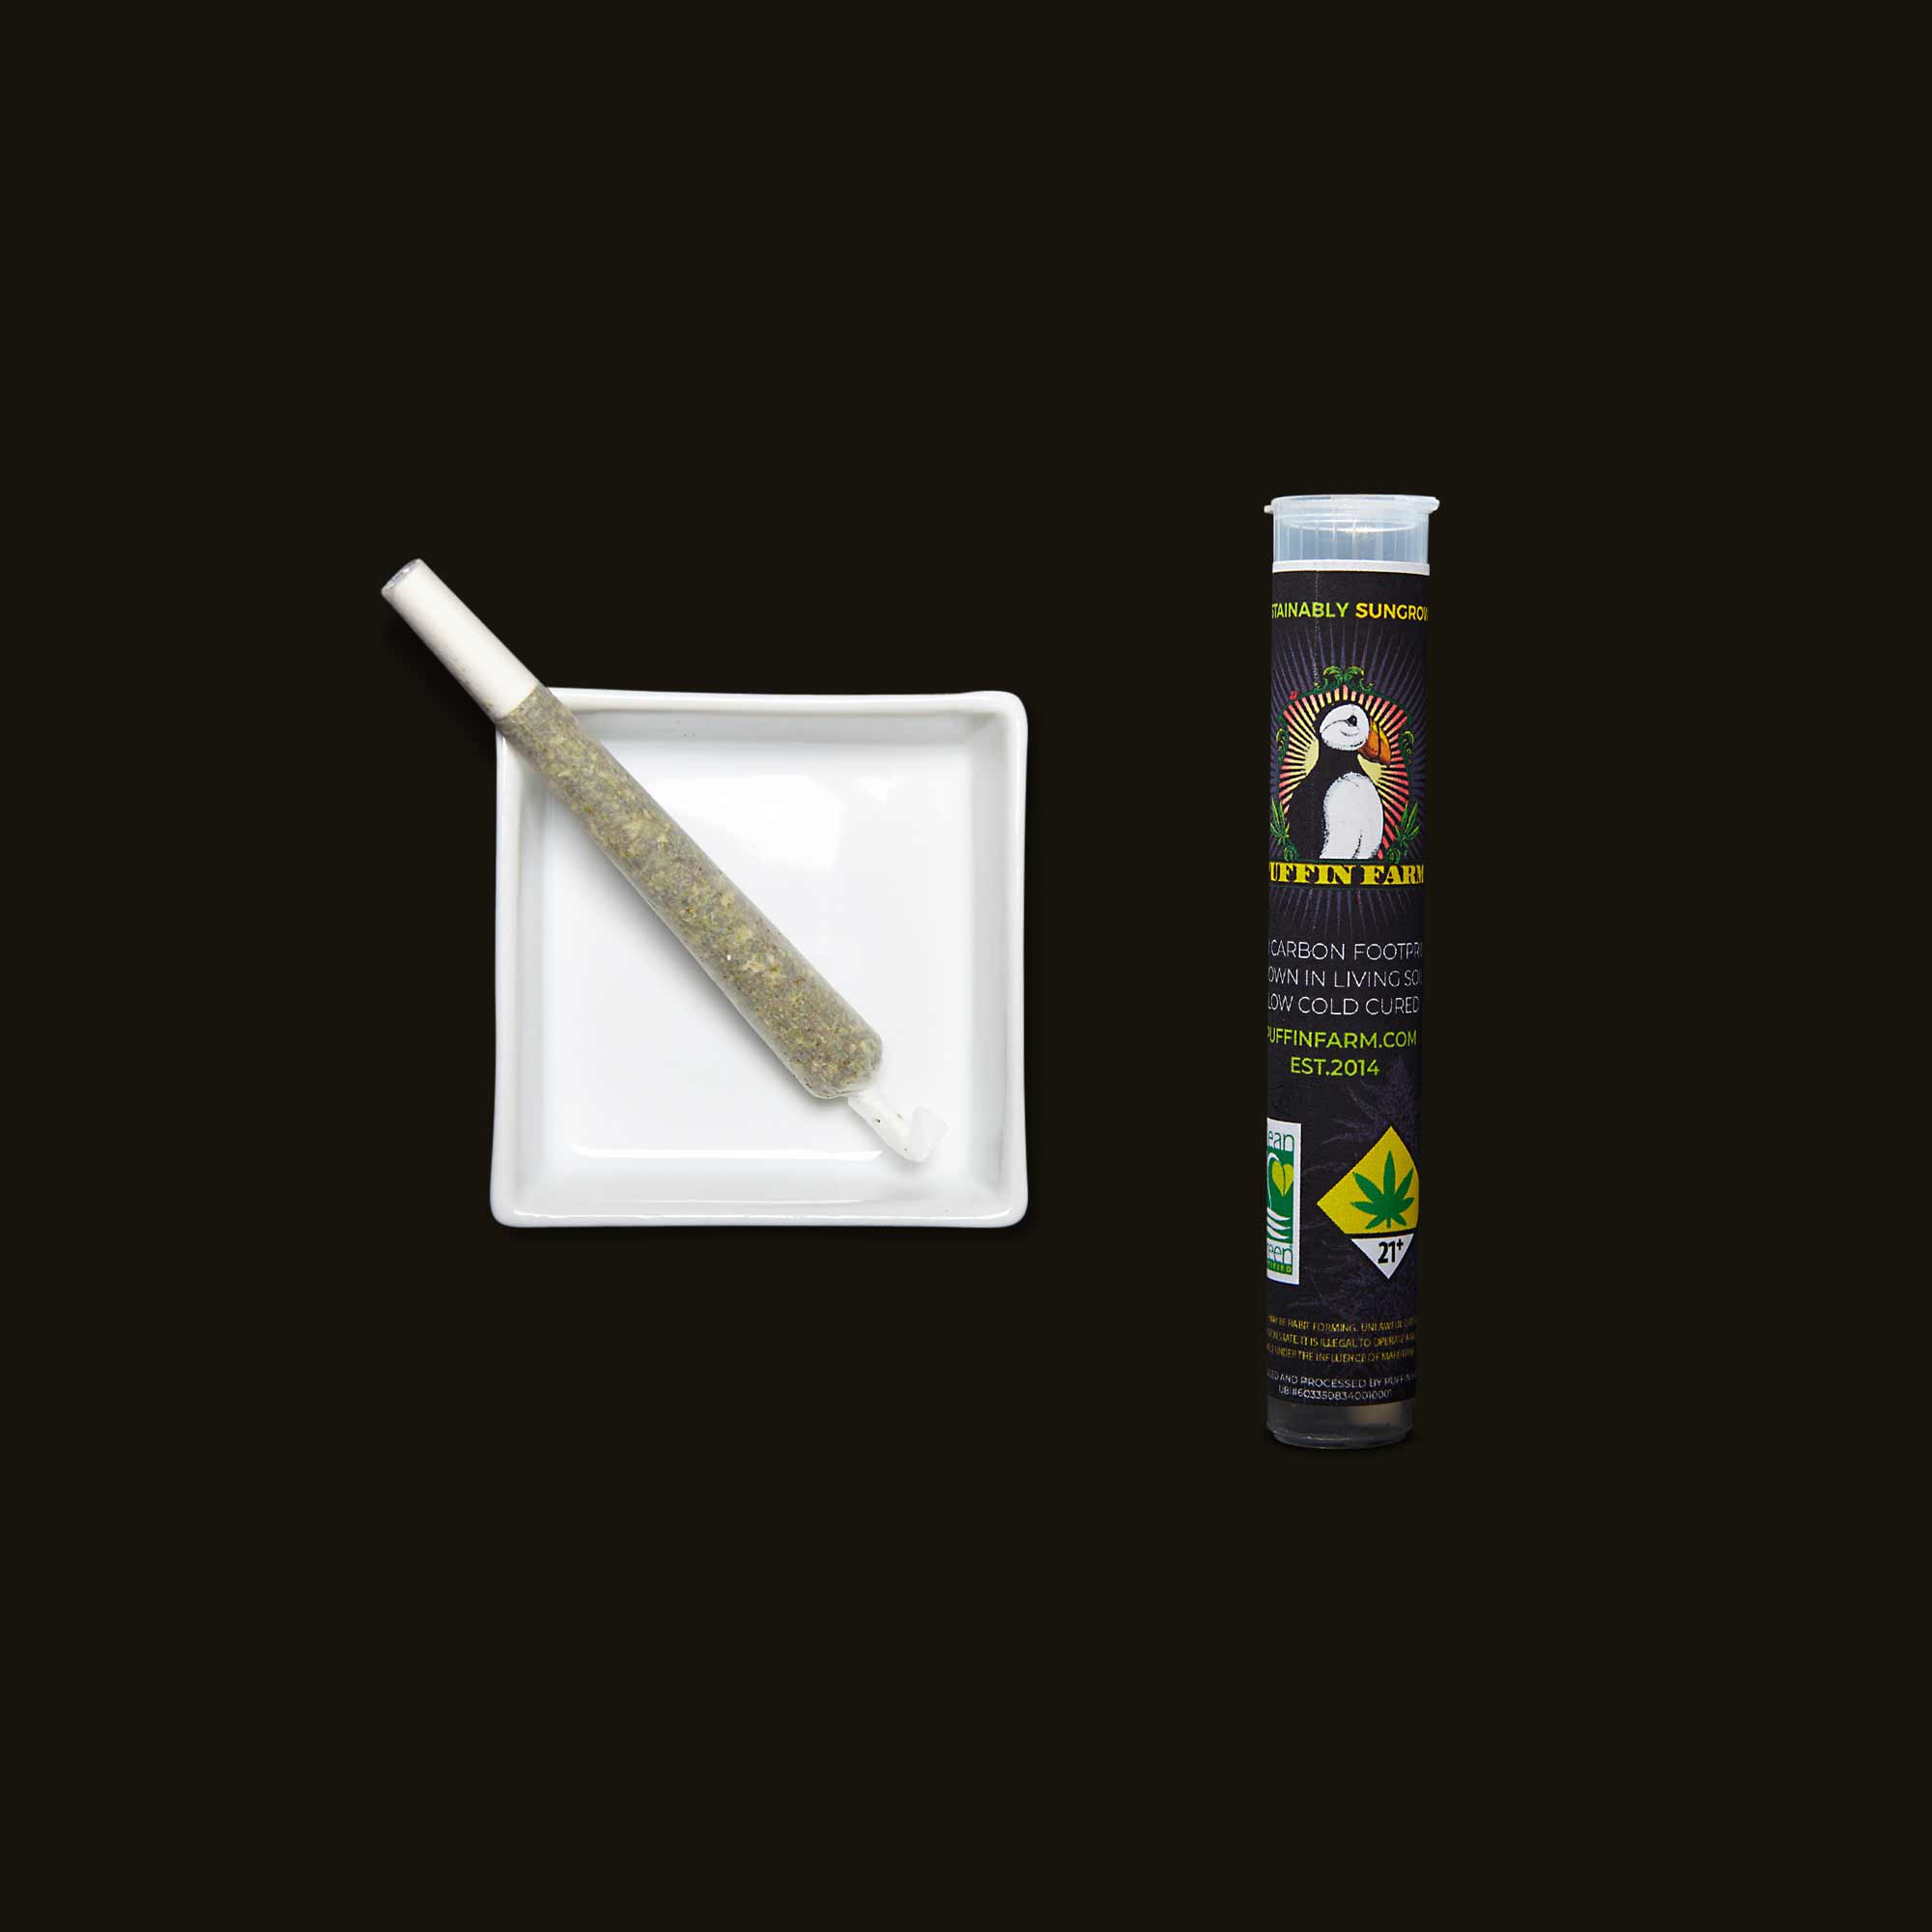 Puffin Farm Gorilla Glue #4 Pre-Roll